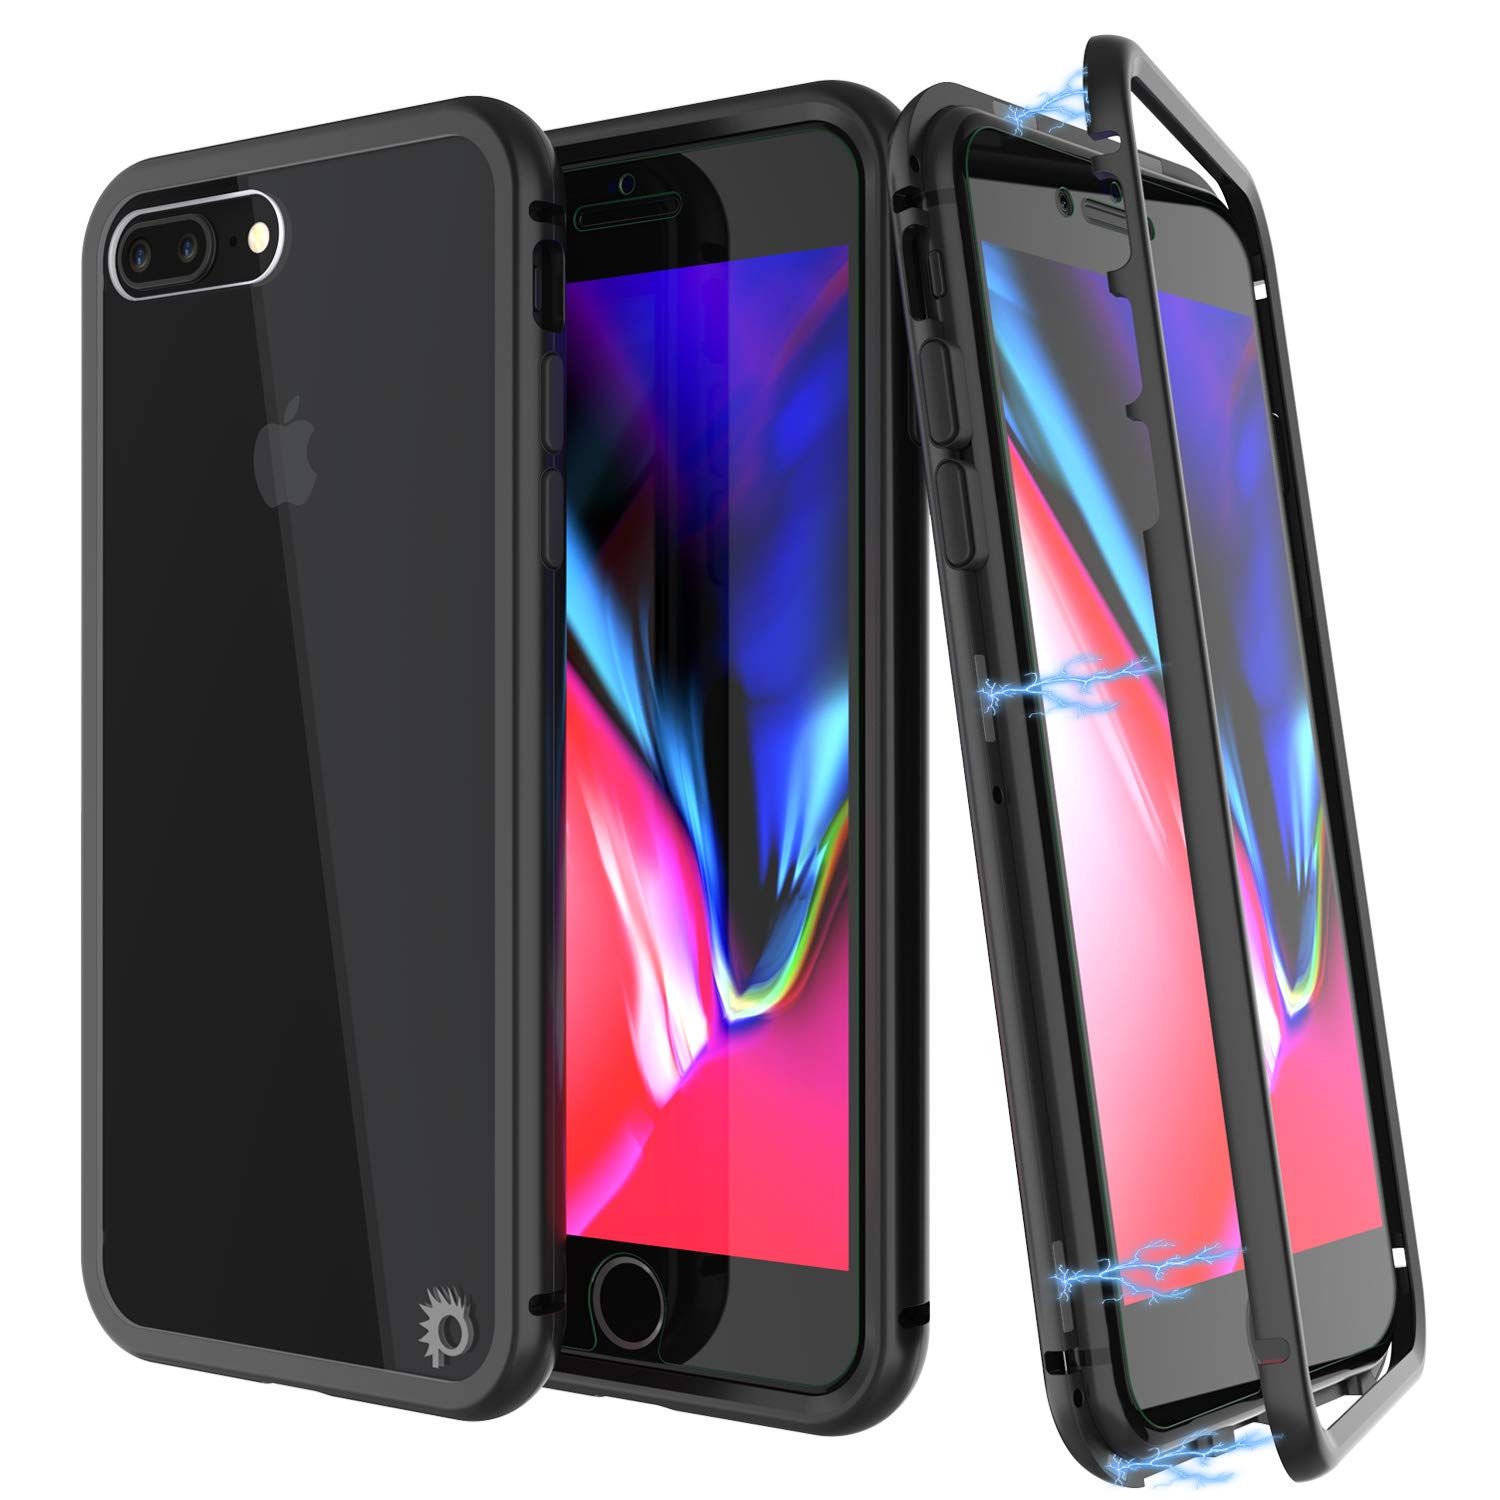 iPhone 8+ Plus Case, Punkcase Magnetix 2.0 Protective TPU Cover W/ Tempered Glass Screen Protector [Black]